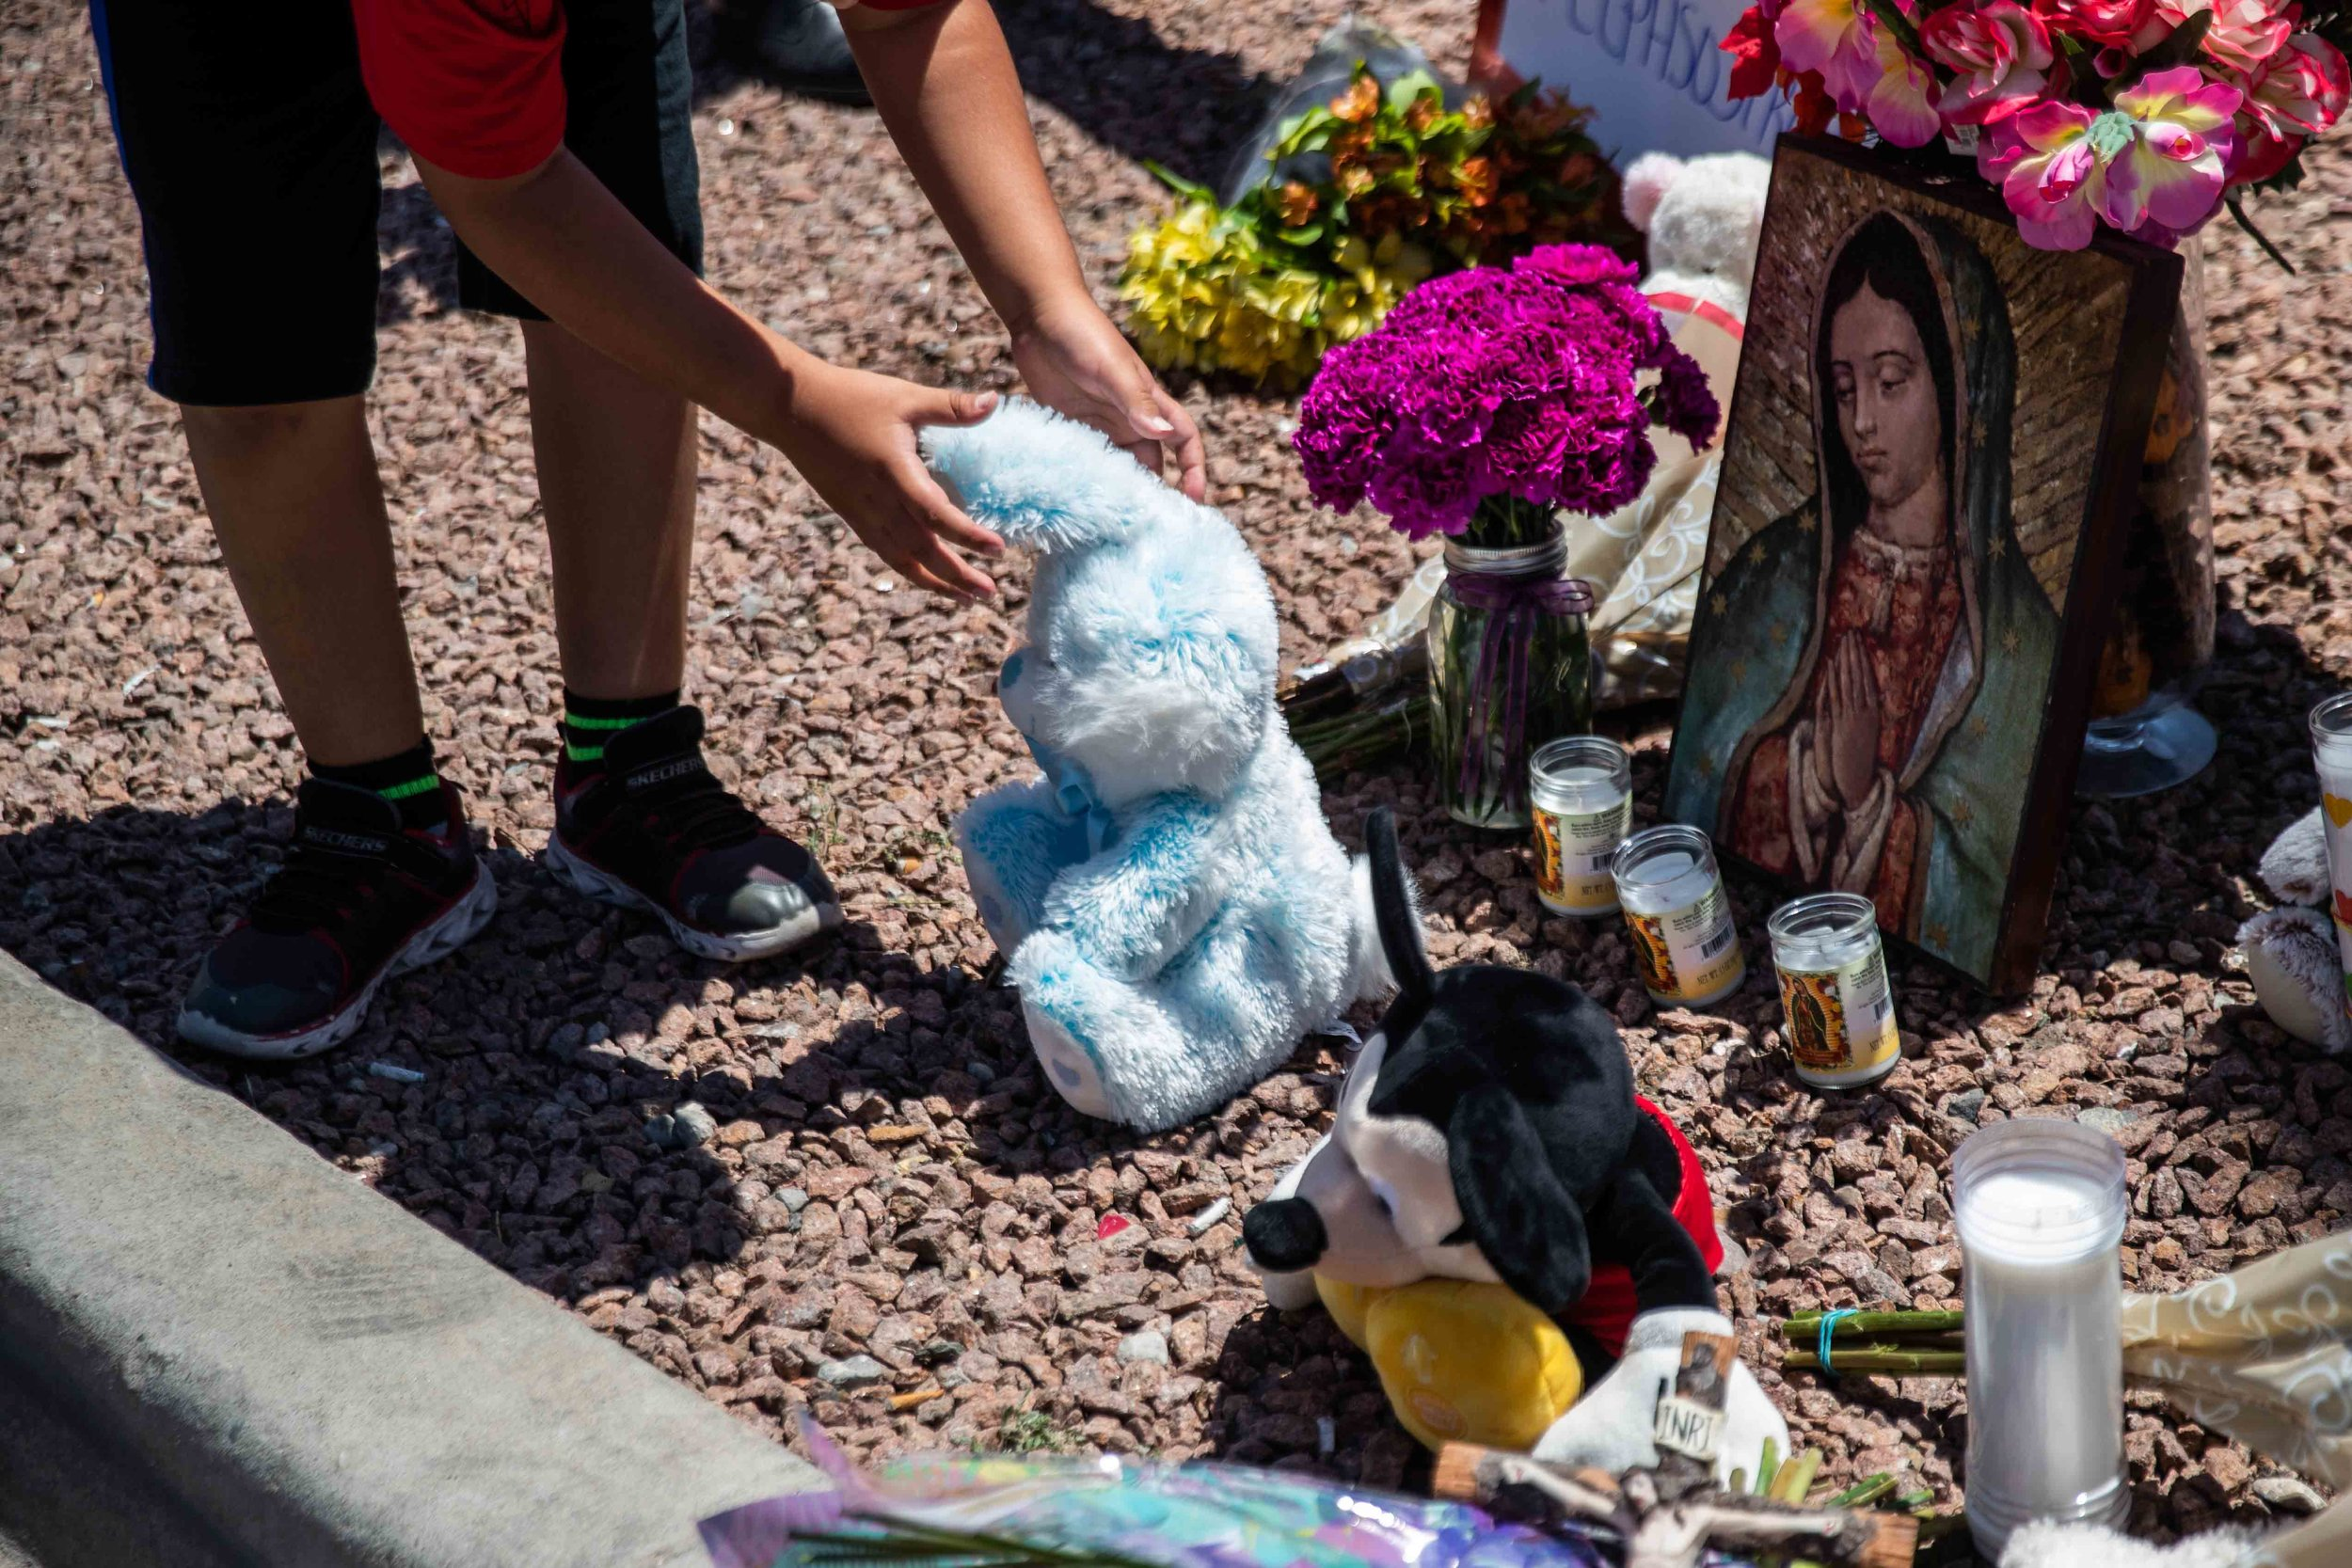 Kevin Roldan leaves a stuffed animal next to a Virgen de Guadalupe poster to honor the memory of the victims of the mass shooting occurred in Walmart on Saturday morning in El Paso on Sunday, August 4, 2019.